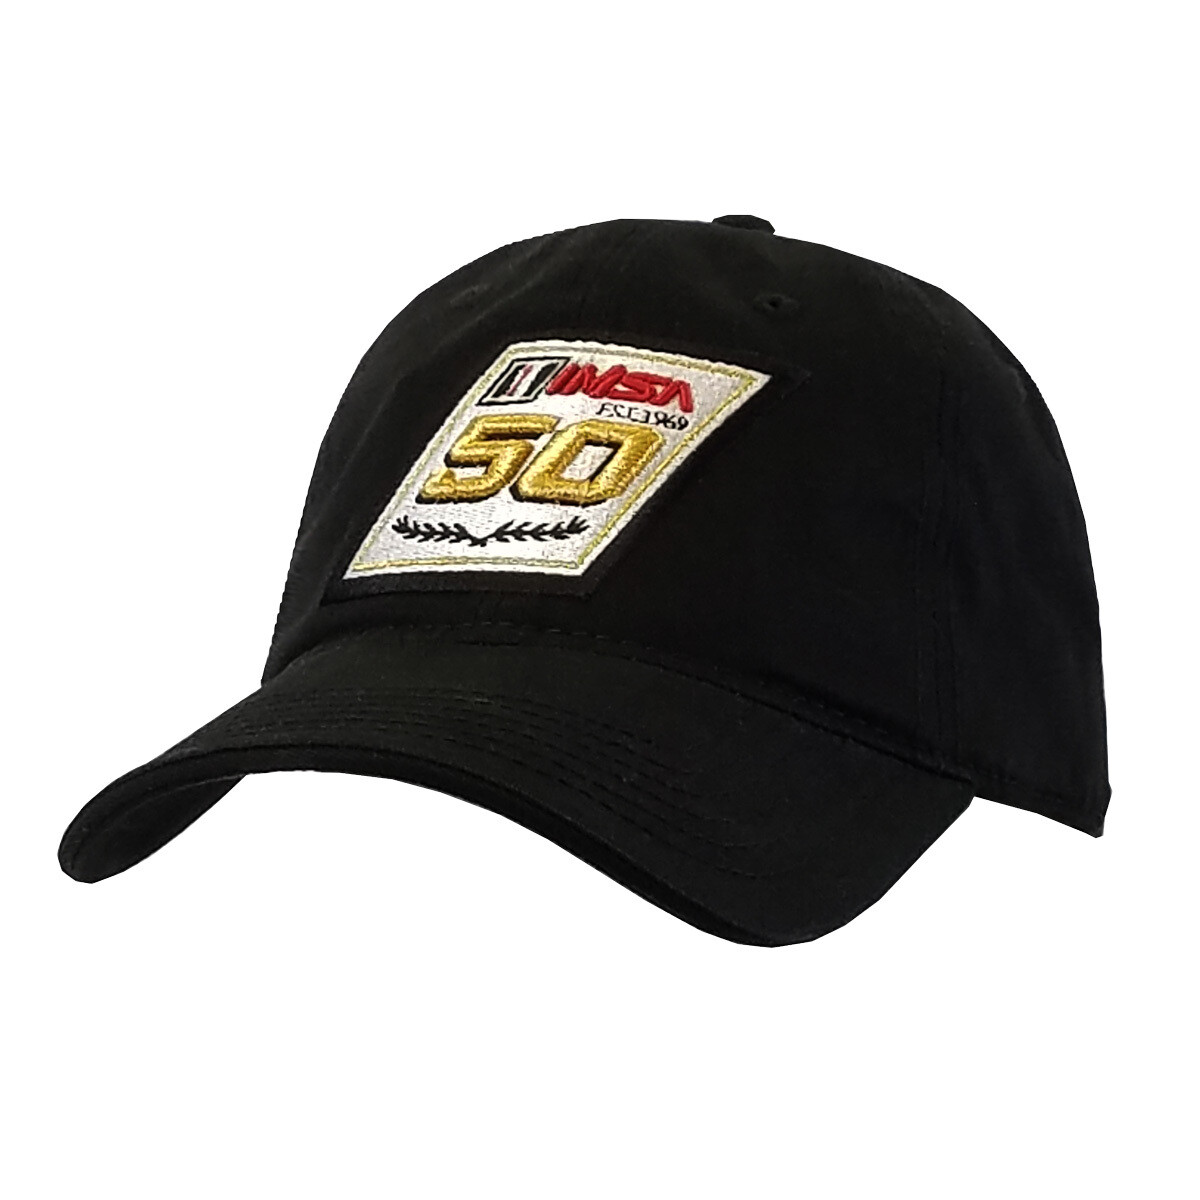 IMSA 50th Anniversary Black Relaxed Hat